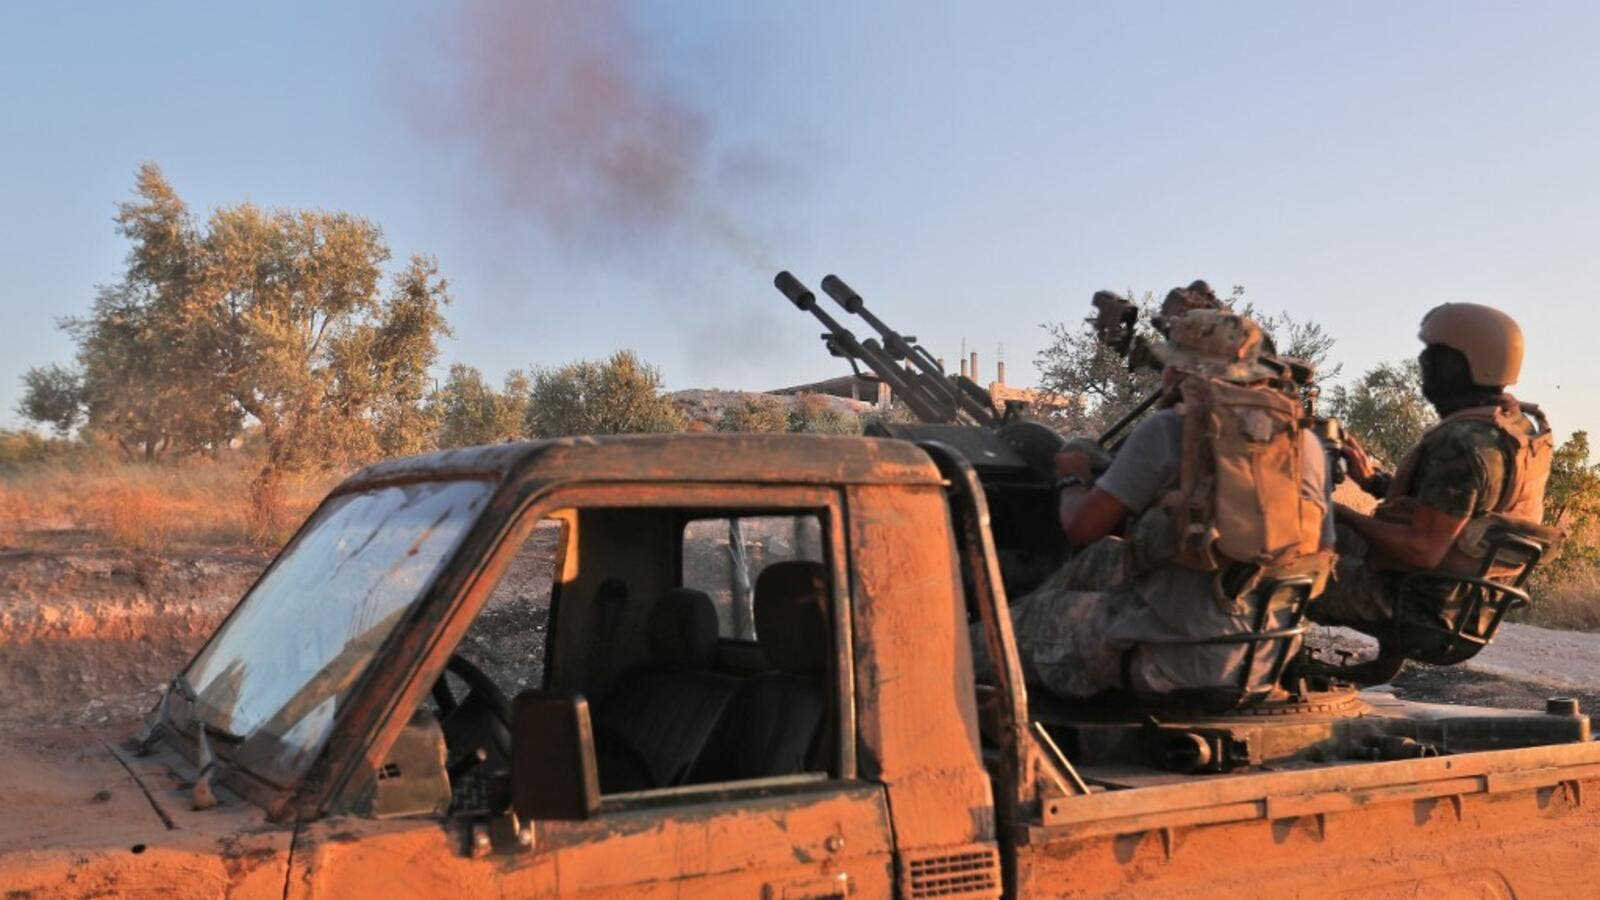 Fighters from the former al-Qaeda Syrian affiliate Hayat Tahrir al-Sham (HTS) fire an anti-aircraft gun mounted on a pickup truck in Syria's southern Idlib province on August 7, 2019. (Omar HAJ KADOUR / AFP)